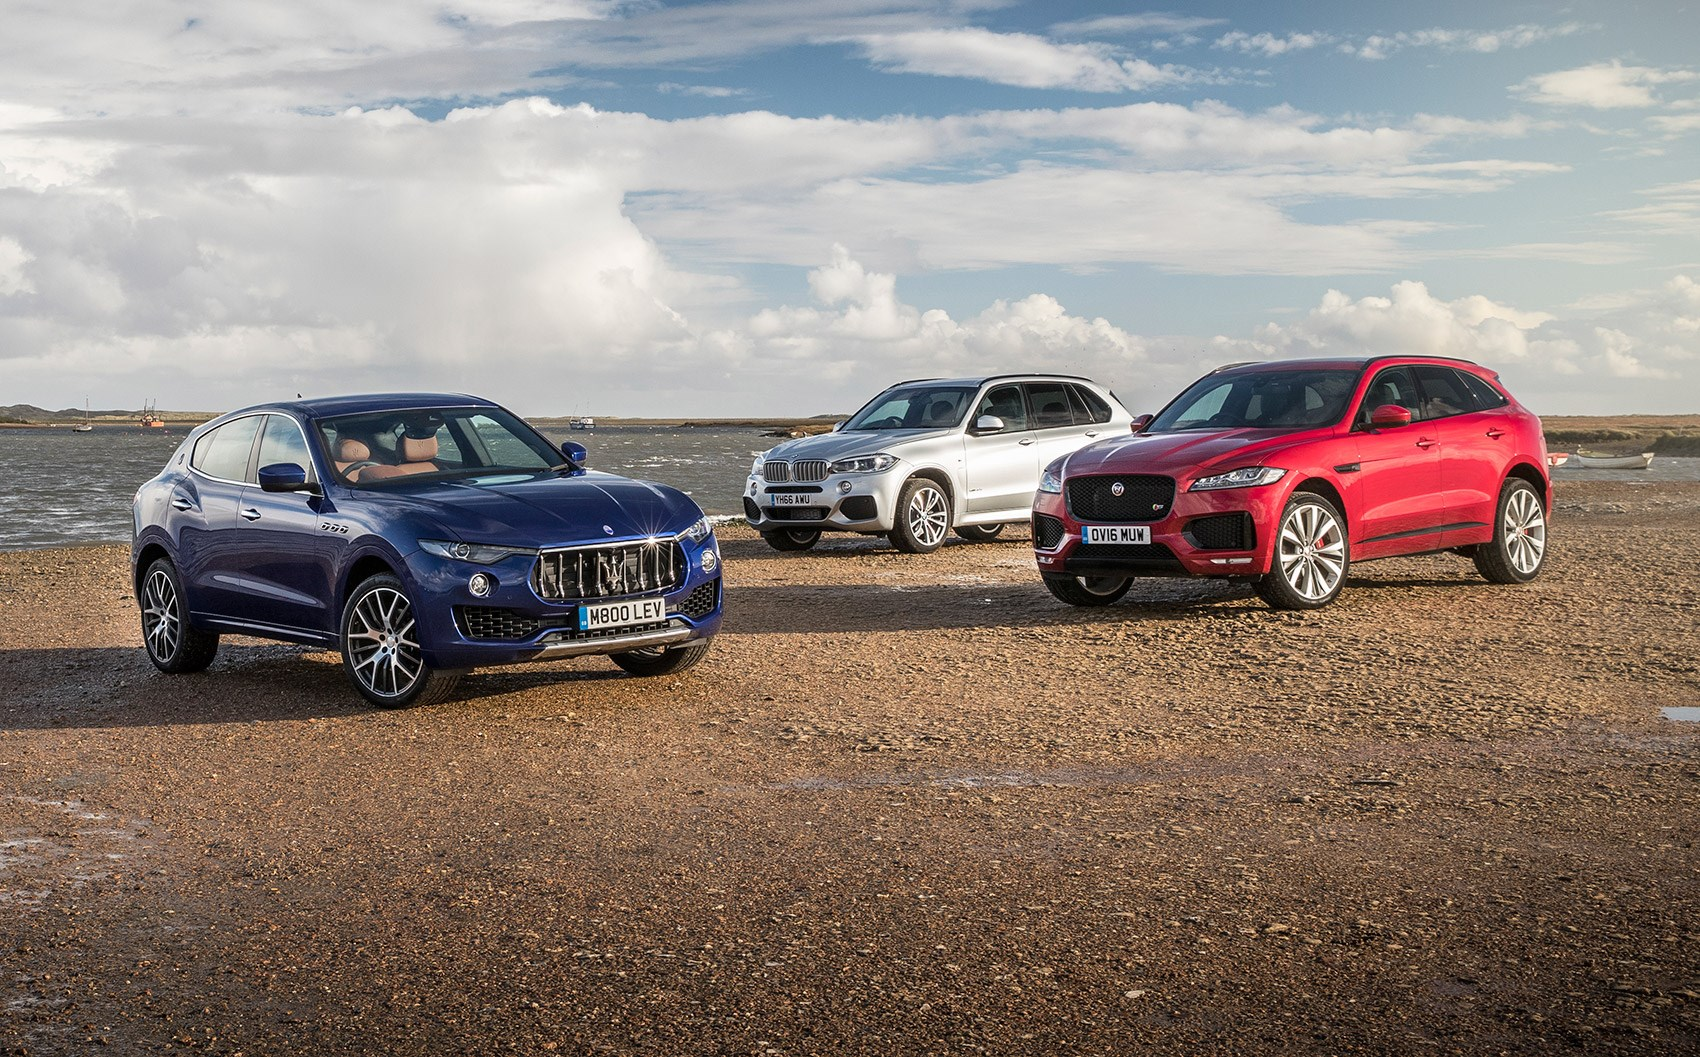 maserati levante vs model x with Maserati Levante Vs Jaguar F Pace Vs Bmw X5 2017 Review on Get To Know The 2017 Maserati Levante At Mike Ward Maserati Near Denver besides New 2018 Maserati Levante Awd 4d Sport Utility Zn661xua8jx277280 in addition 2017 Maserati Levante For Sale Oakhurst Nj 8cdfe3c20a0e0ae8145e712d327f967f moreover Book Of 2016 Maserati Levante Review In Us additionally Peugeot Blue.